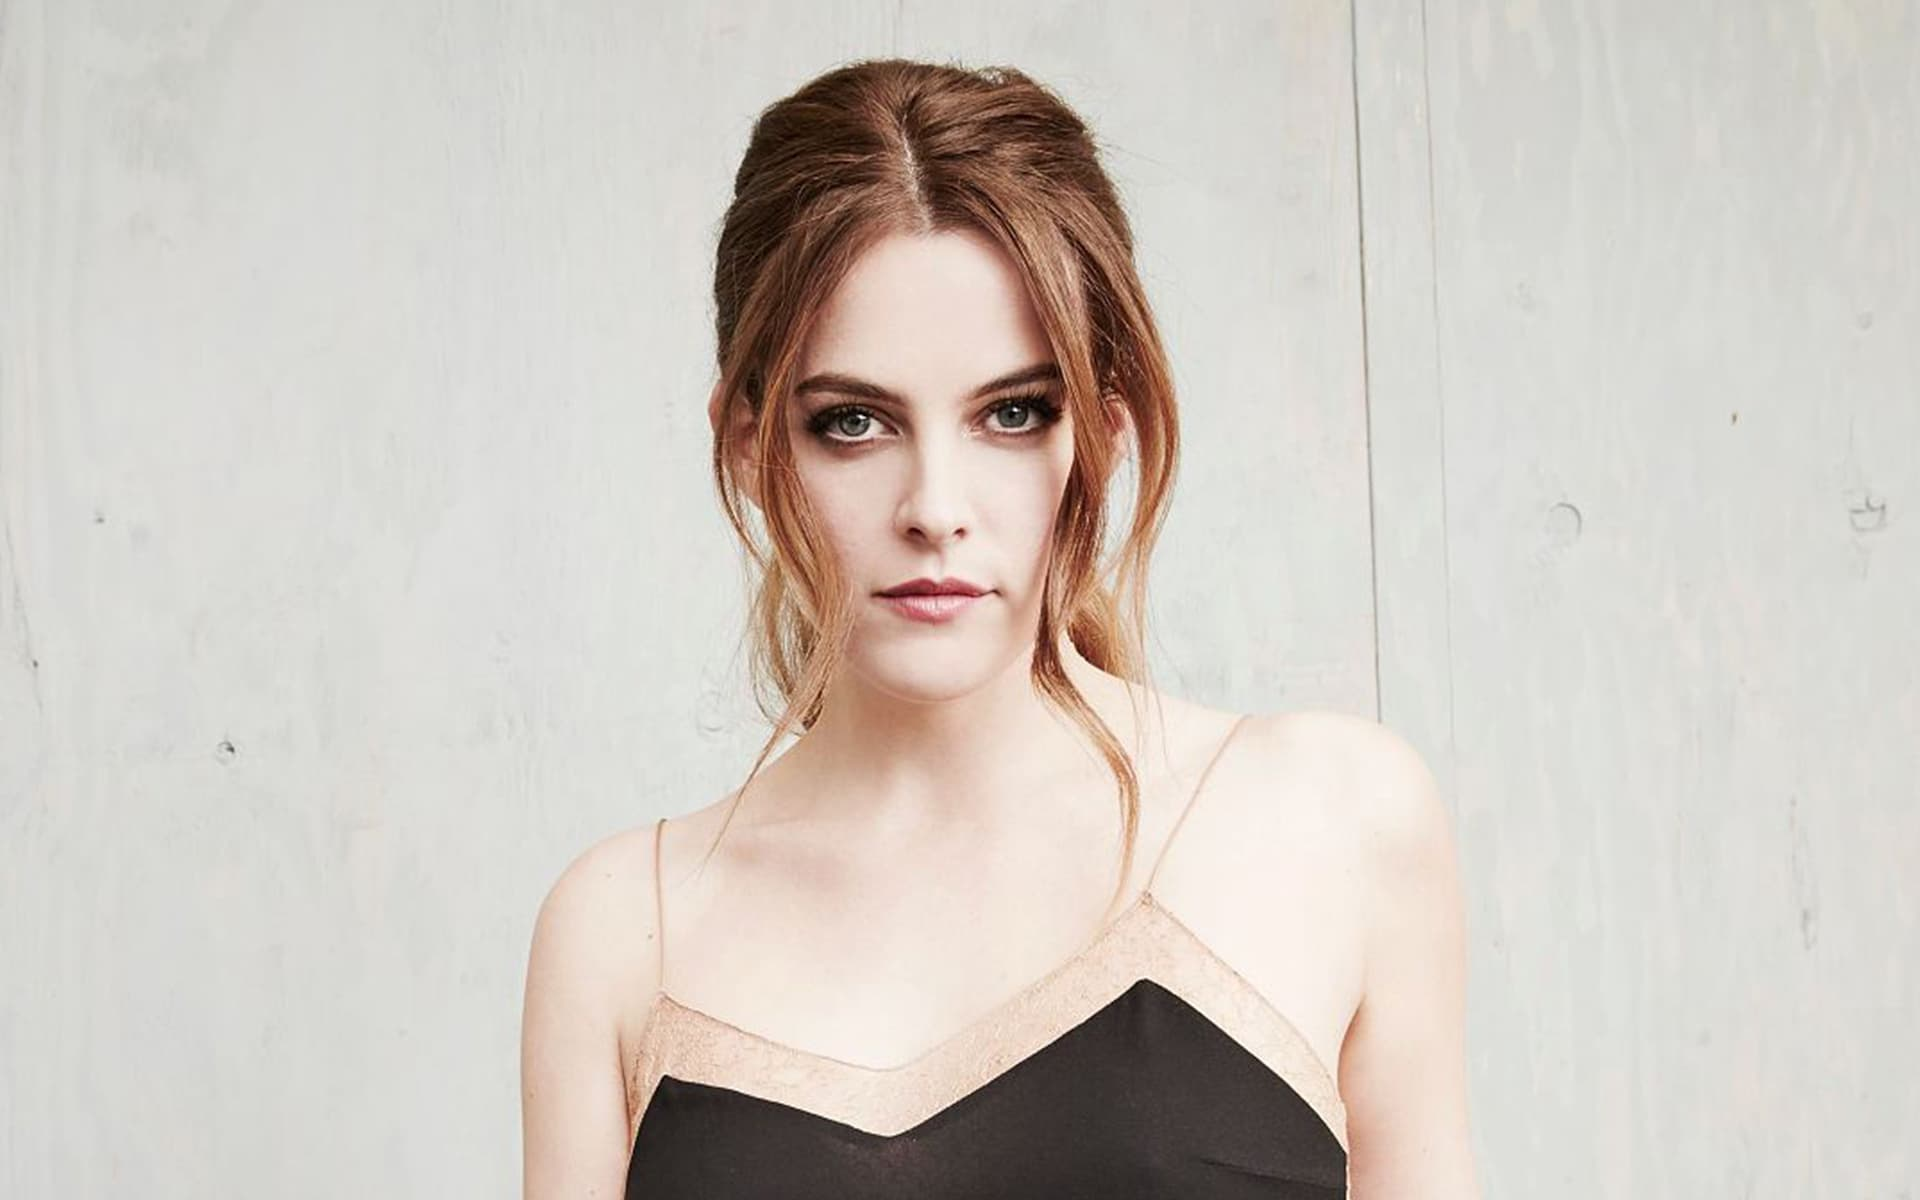 Riley Keough pretty HD wallpaper images download